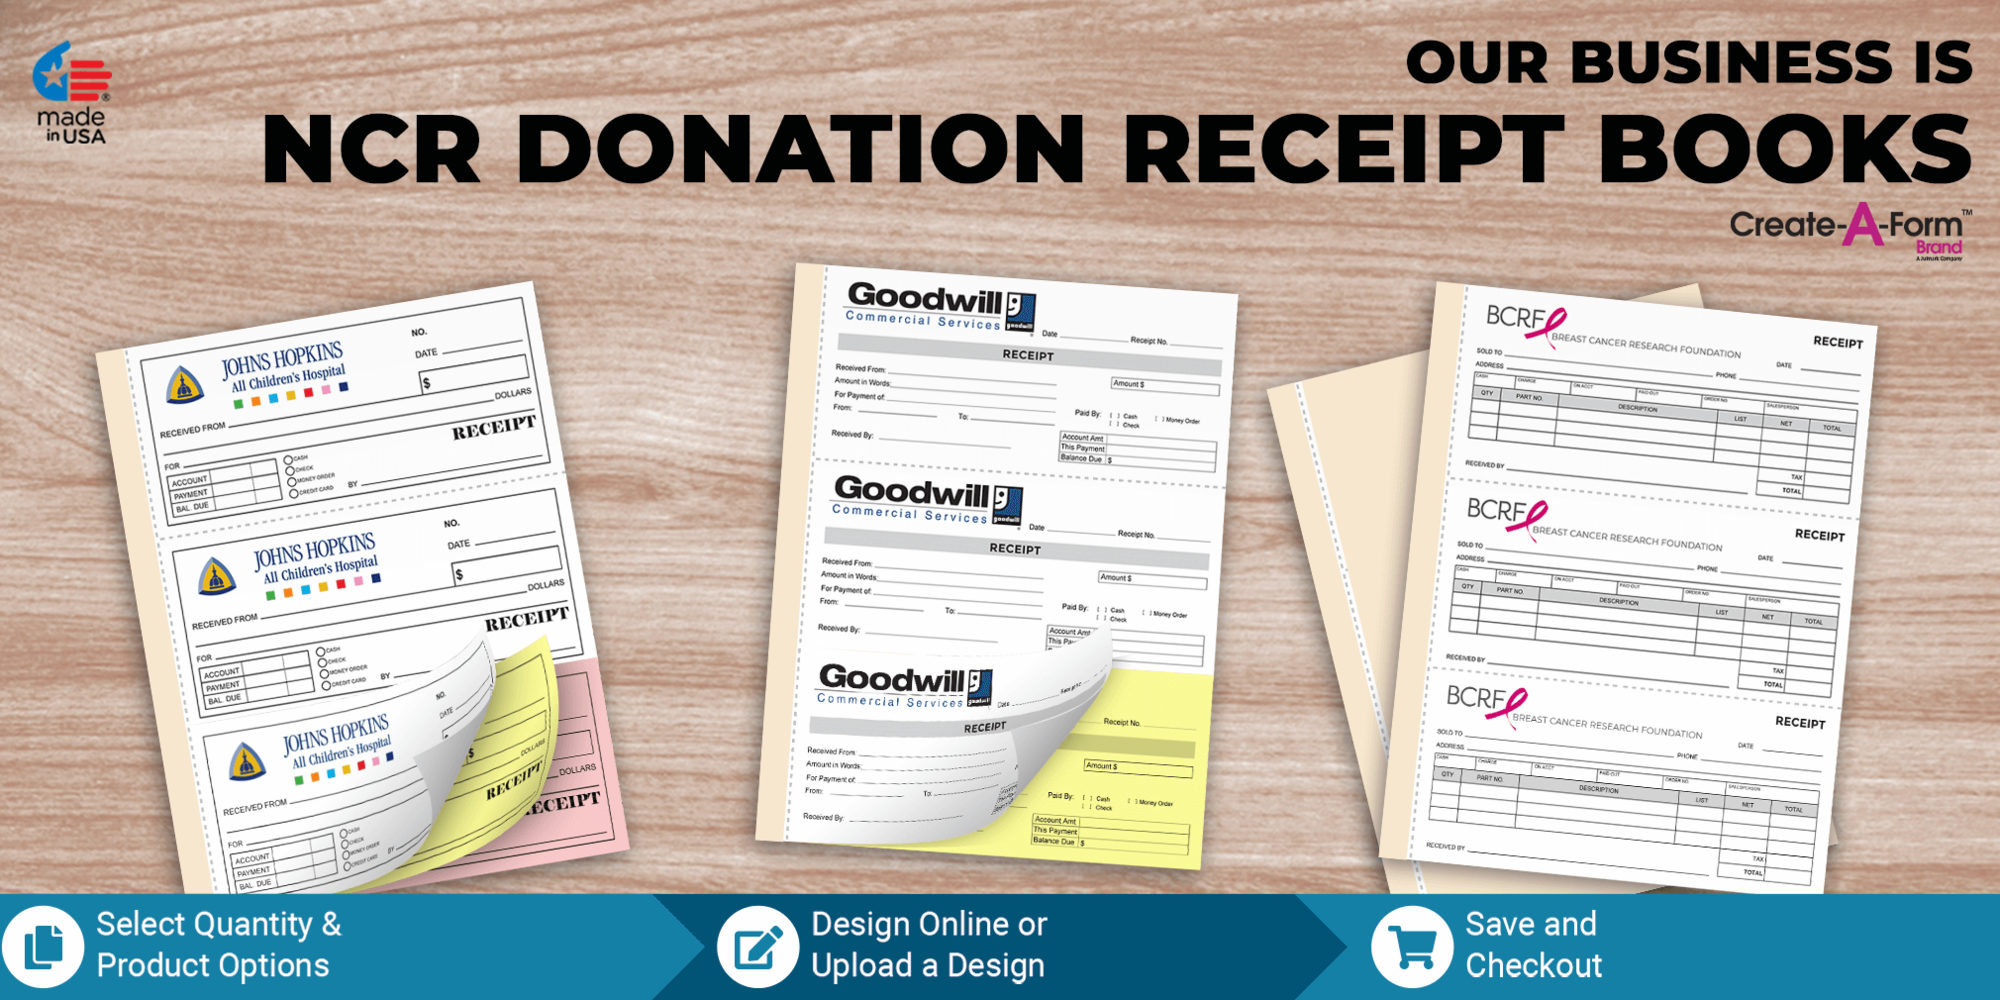 https://printpps.com/images/products_gallery_images/Banner_8_5x11-3up-NCR_Donation_ProdFeat_Cover.png